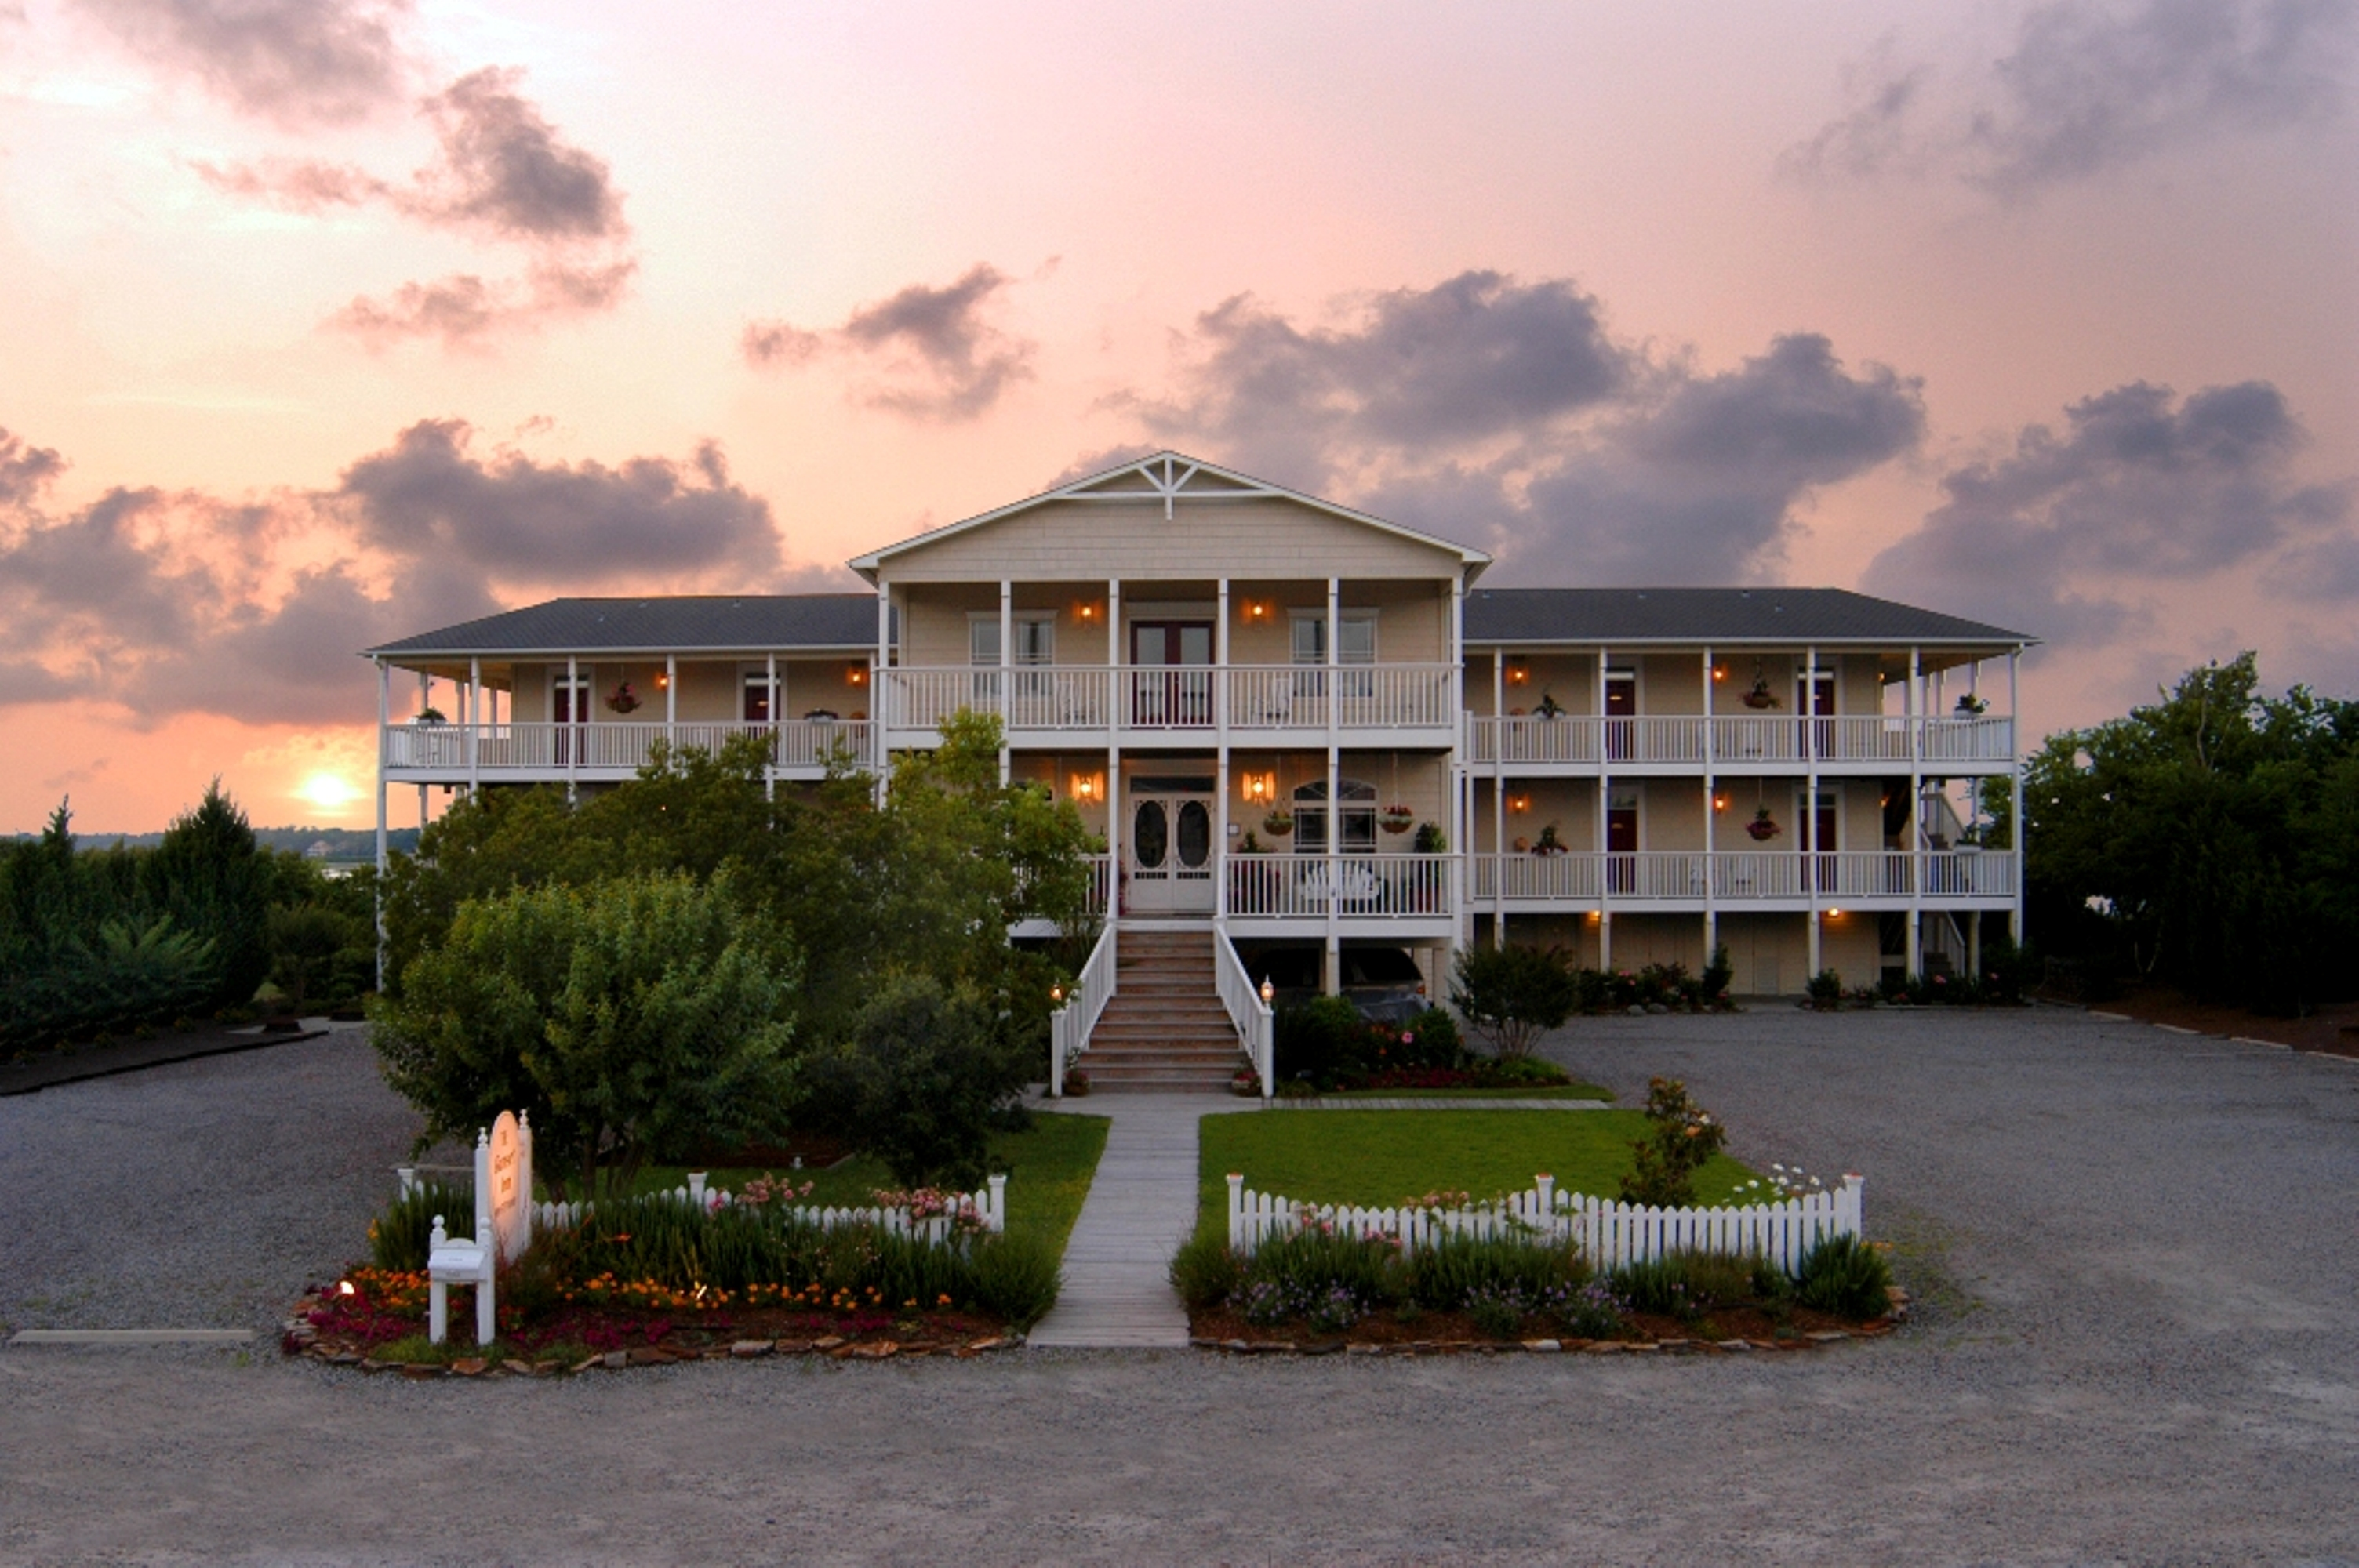 Exterior View at The Sunset Inn